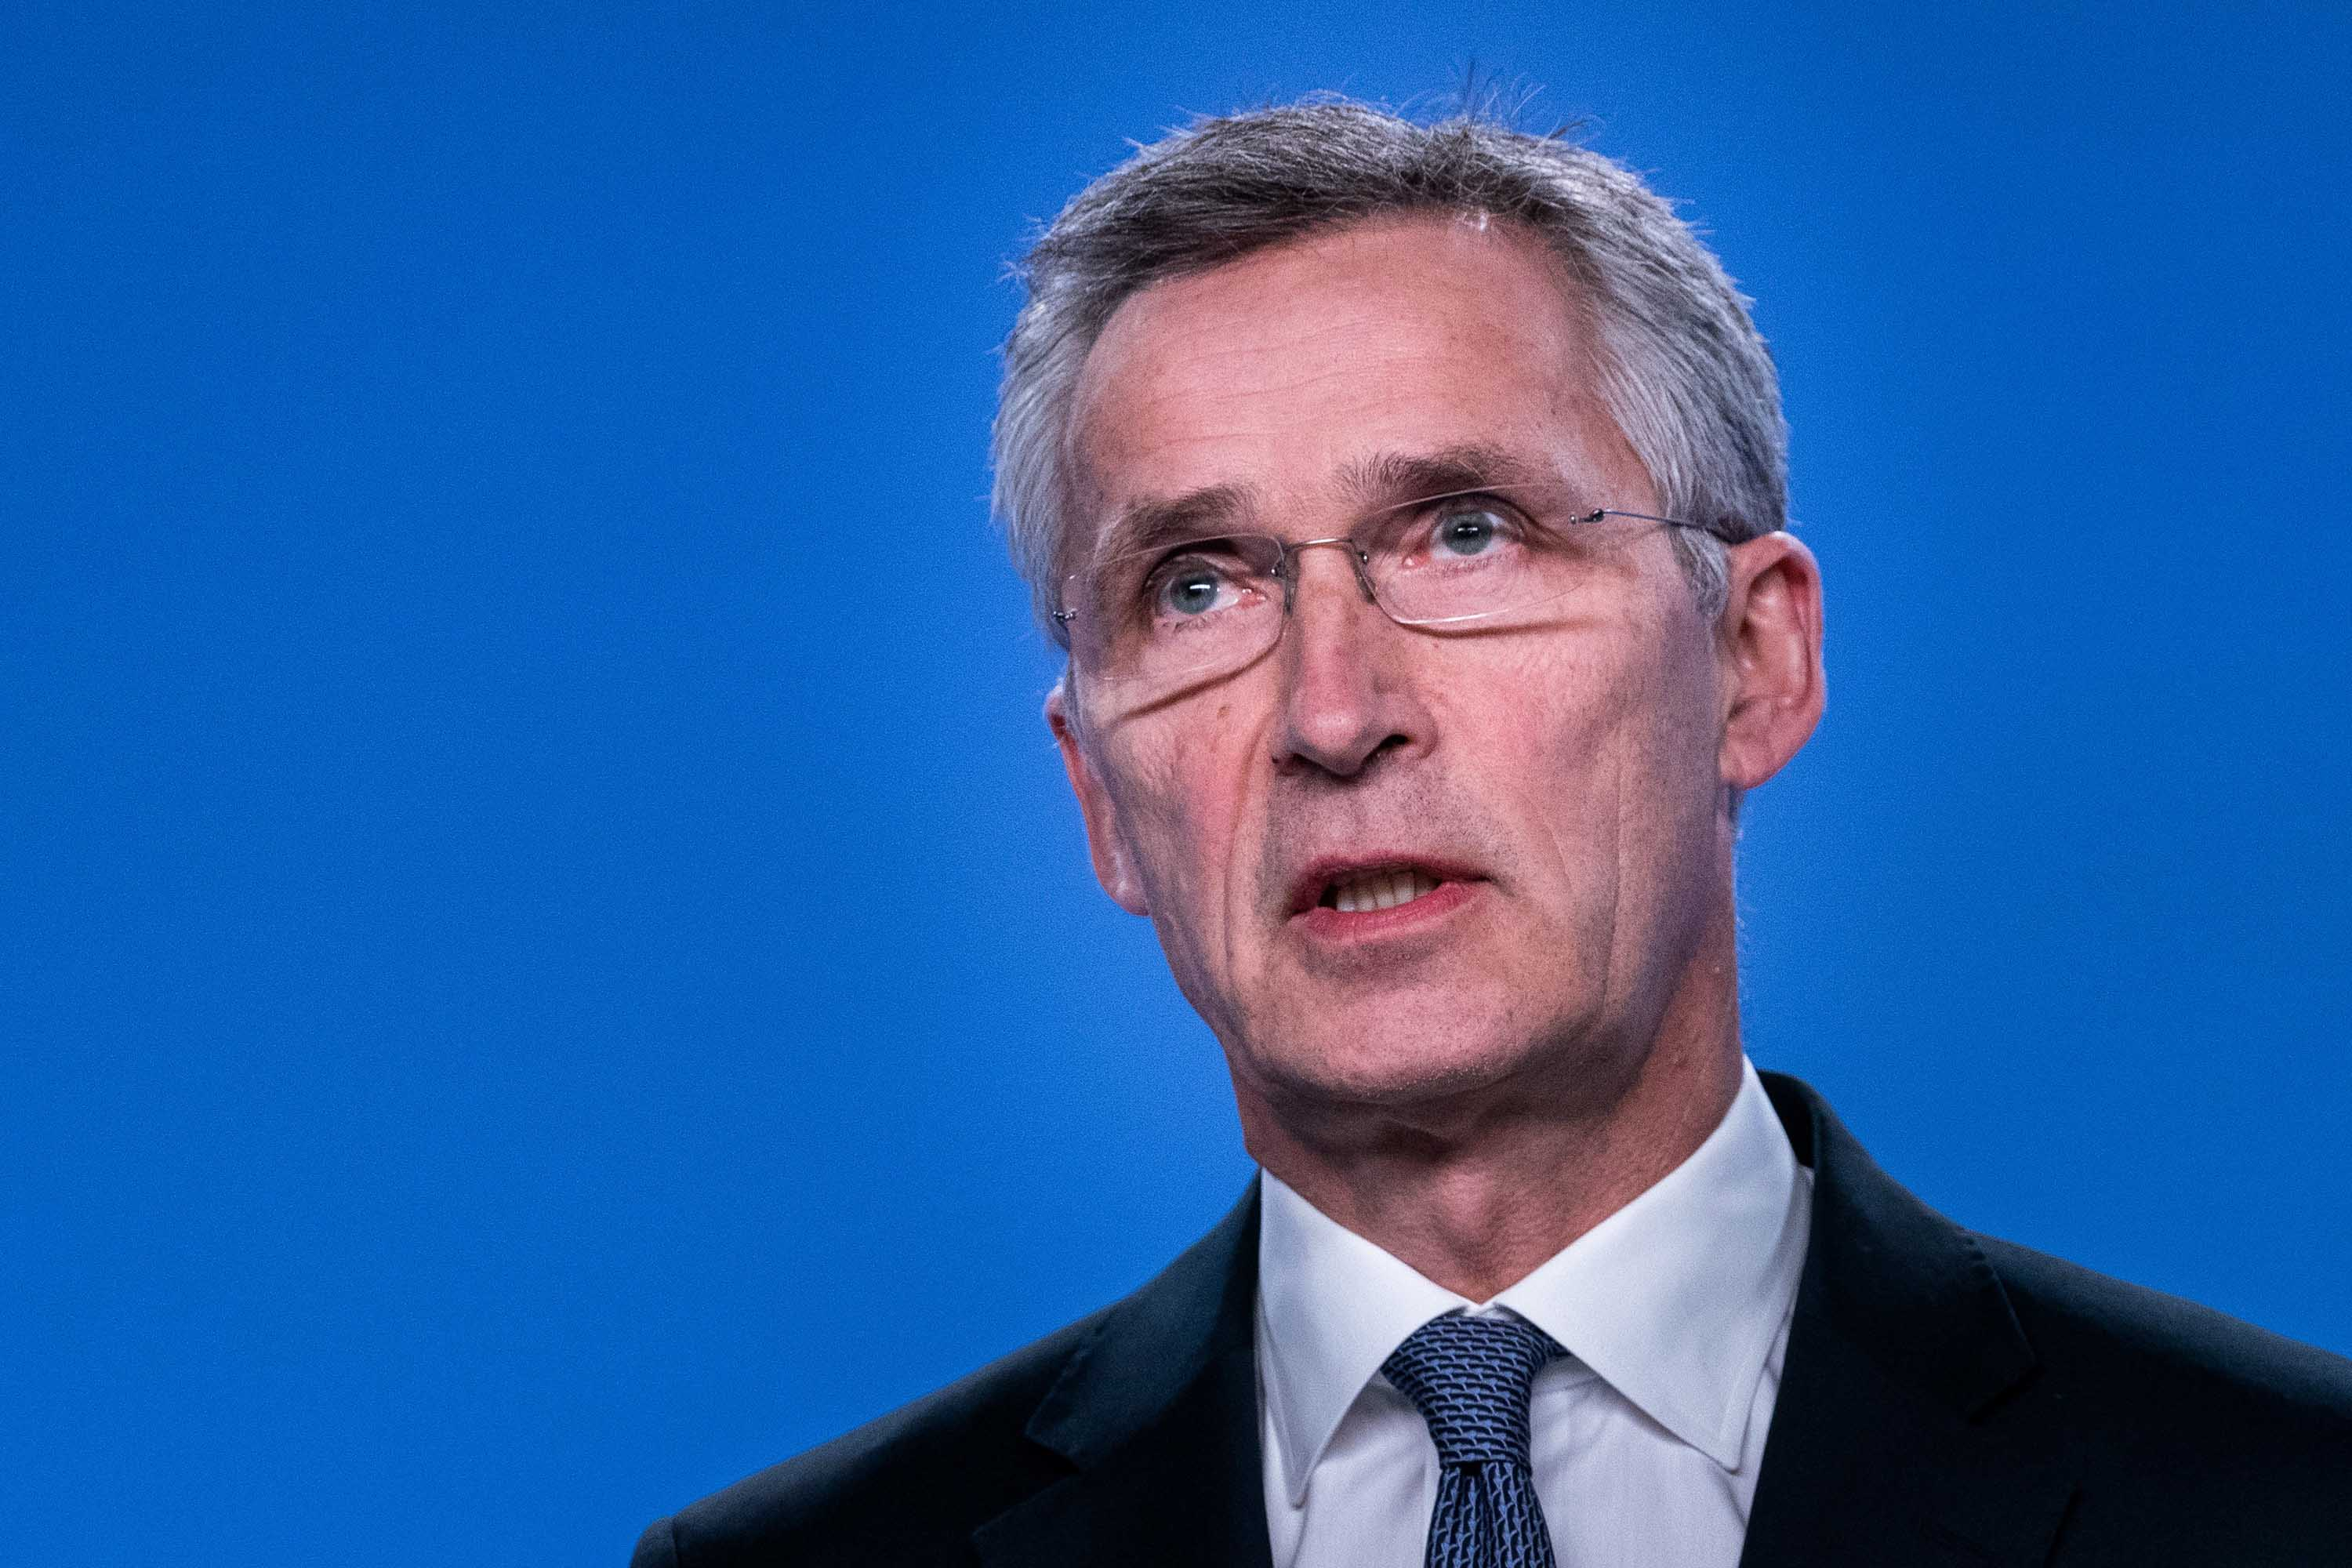 NATO Secretary General Jens Stoltenberg speaks at a press conference on the situation concerning Iran at NATO Headquarters, in Brussels, Belgium on January 6. Credit: Kenzo Tribouillard/AFP via Getty Images